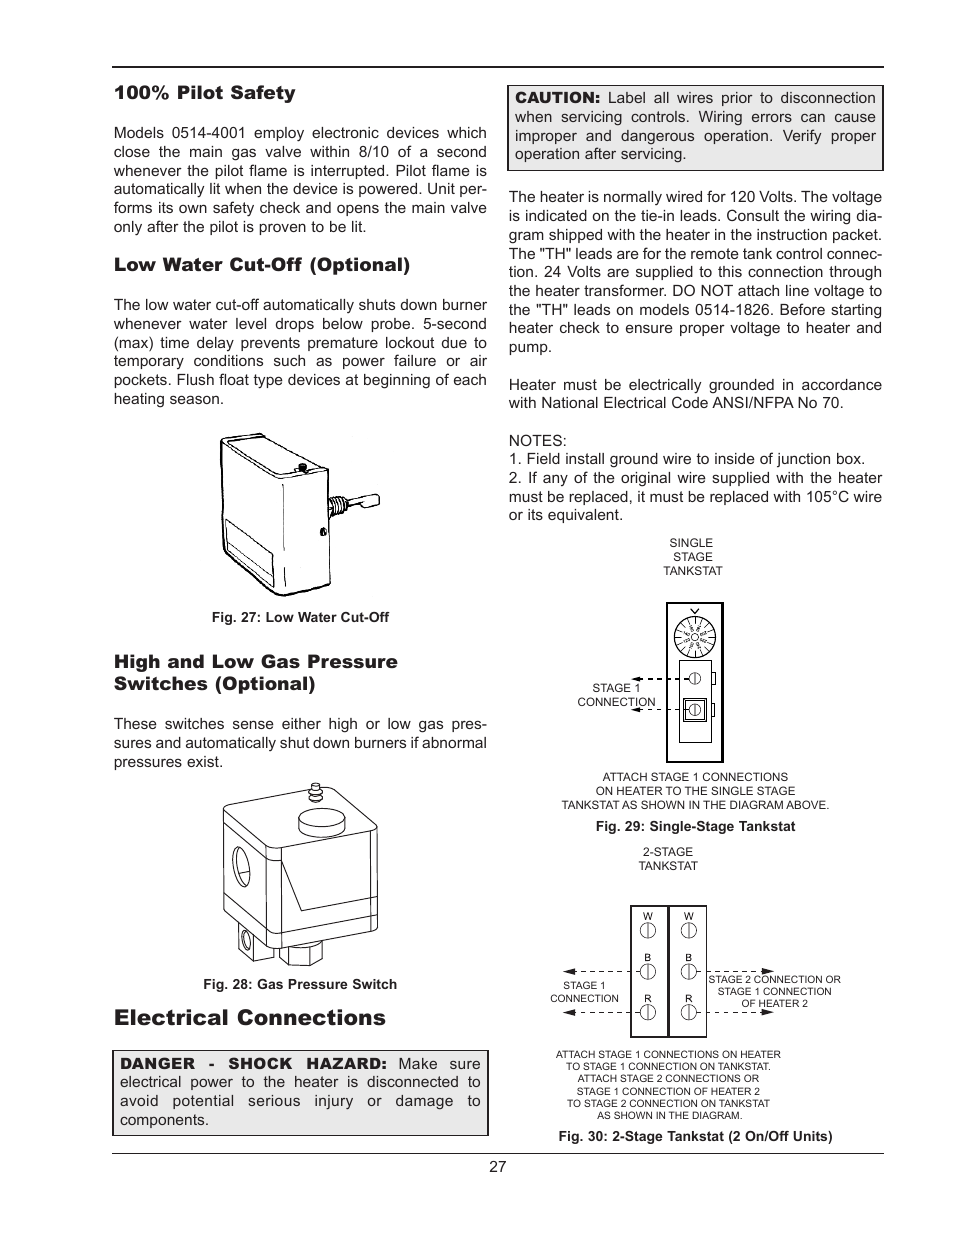 raypak remote wiring diagram wiring diagrams data base wiring diagram for  jandy pool heater electrical connections